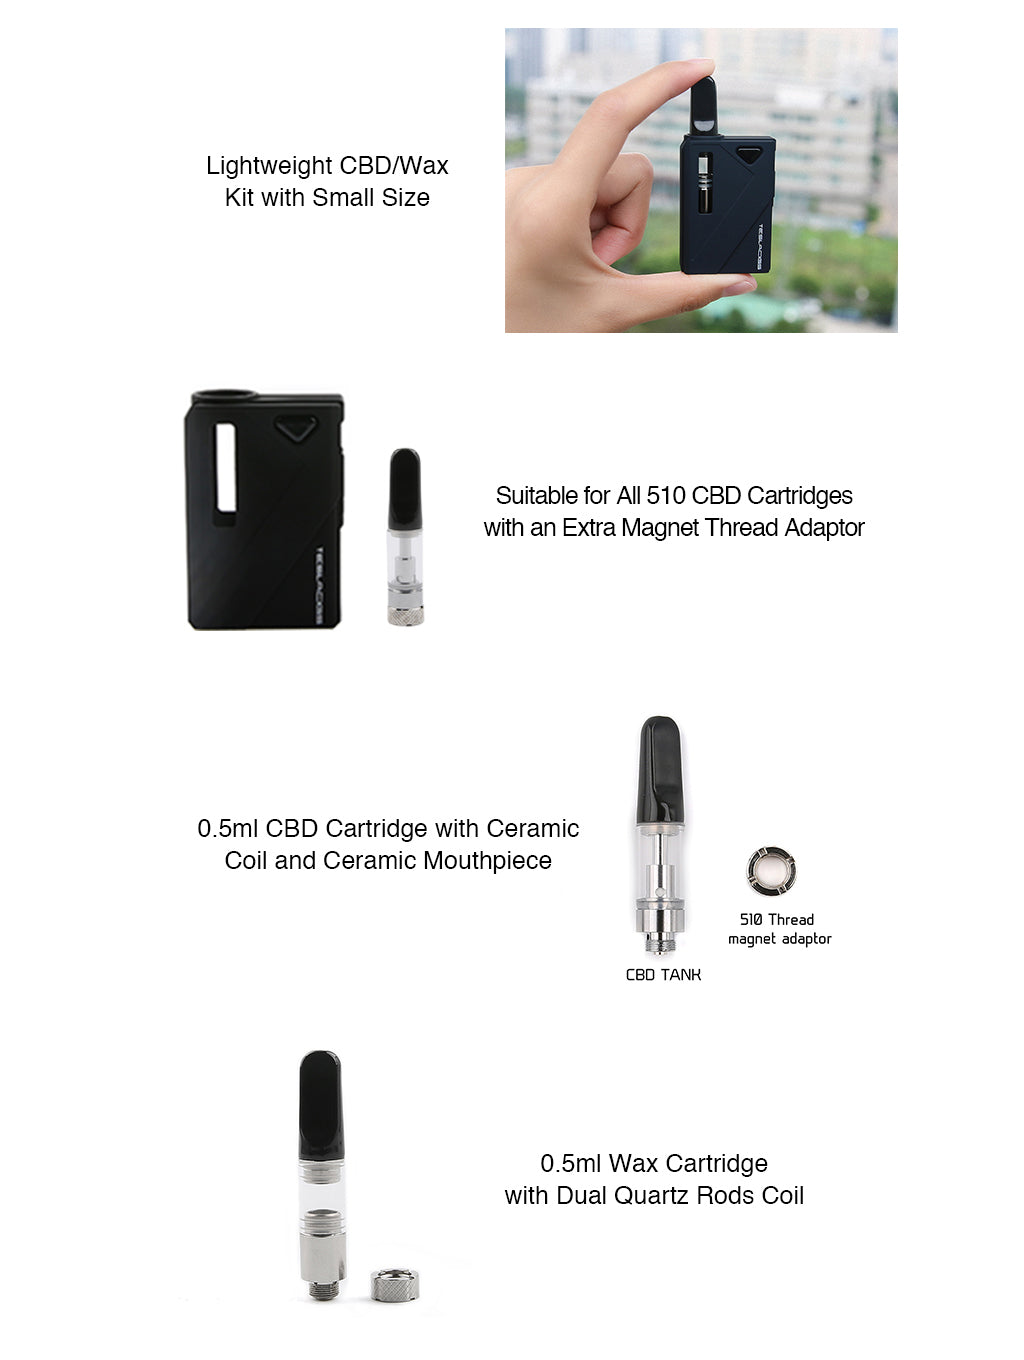 Tesla Mini DUO Kit CBD and WAX Vaporizer Kit Specifications